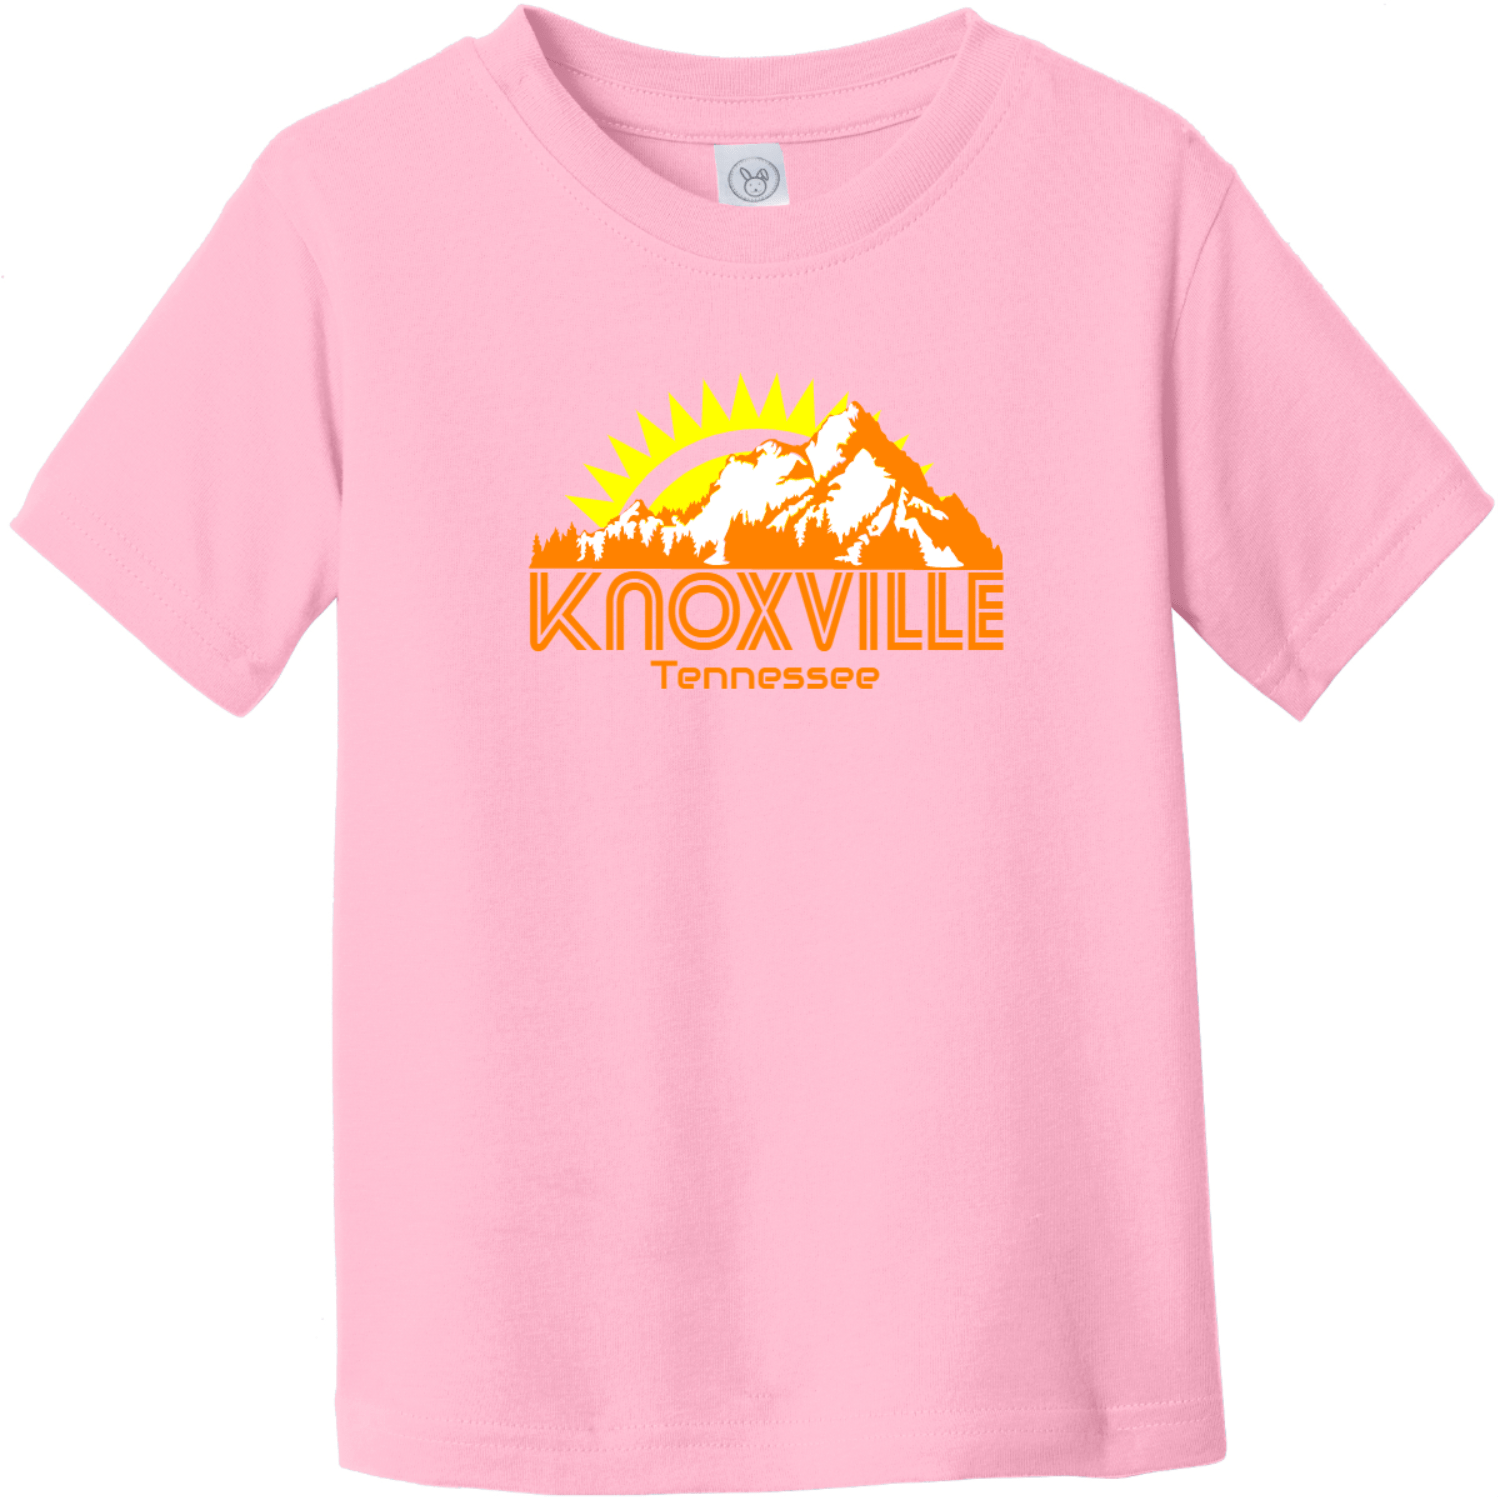 Knoxville Tennessee Mountains Toddler T Shirt Pink Rabbit Skins Toddler Fine Jersey Tee RS3321